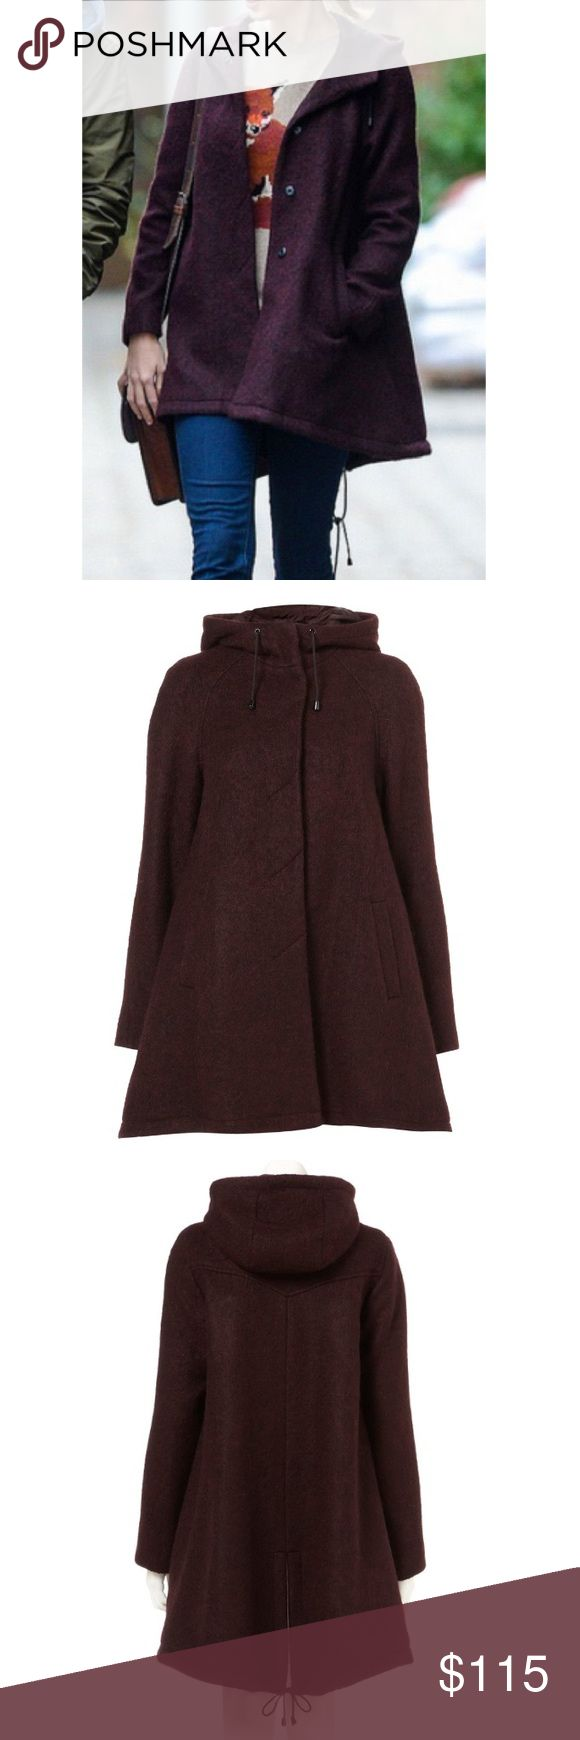 Topshop Burgundy Tall Textured Parka Coat New without tags. Purchased from Topshop in London. Never got to wear it since I live in the gold old state of Arizona. Super warm and fits the body beautifully! Size is US 8/UK 12. Color is Burgundy. Urban Outfitters Jackets & Coats